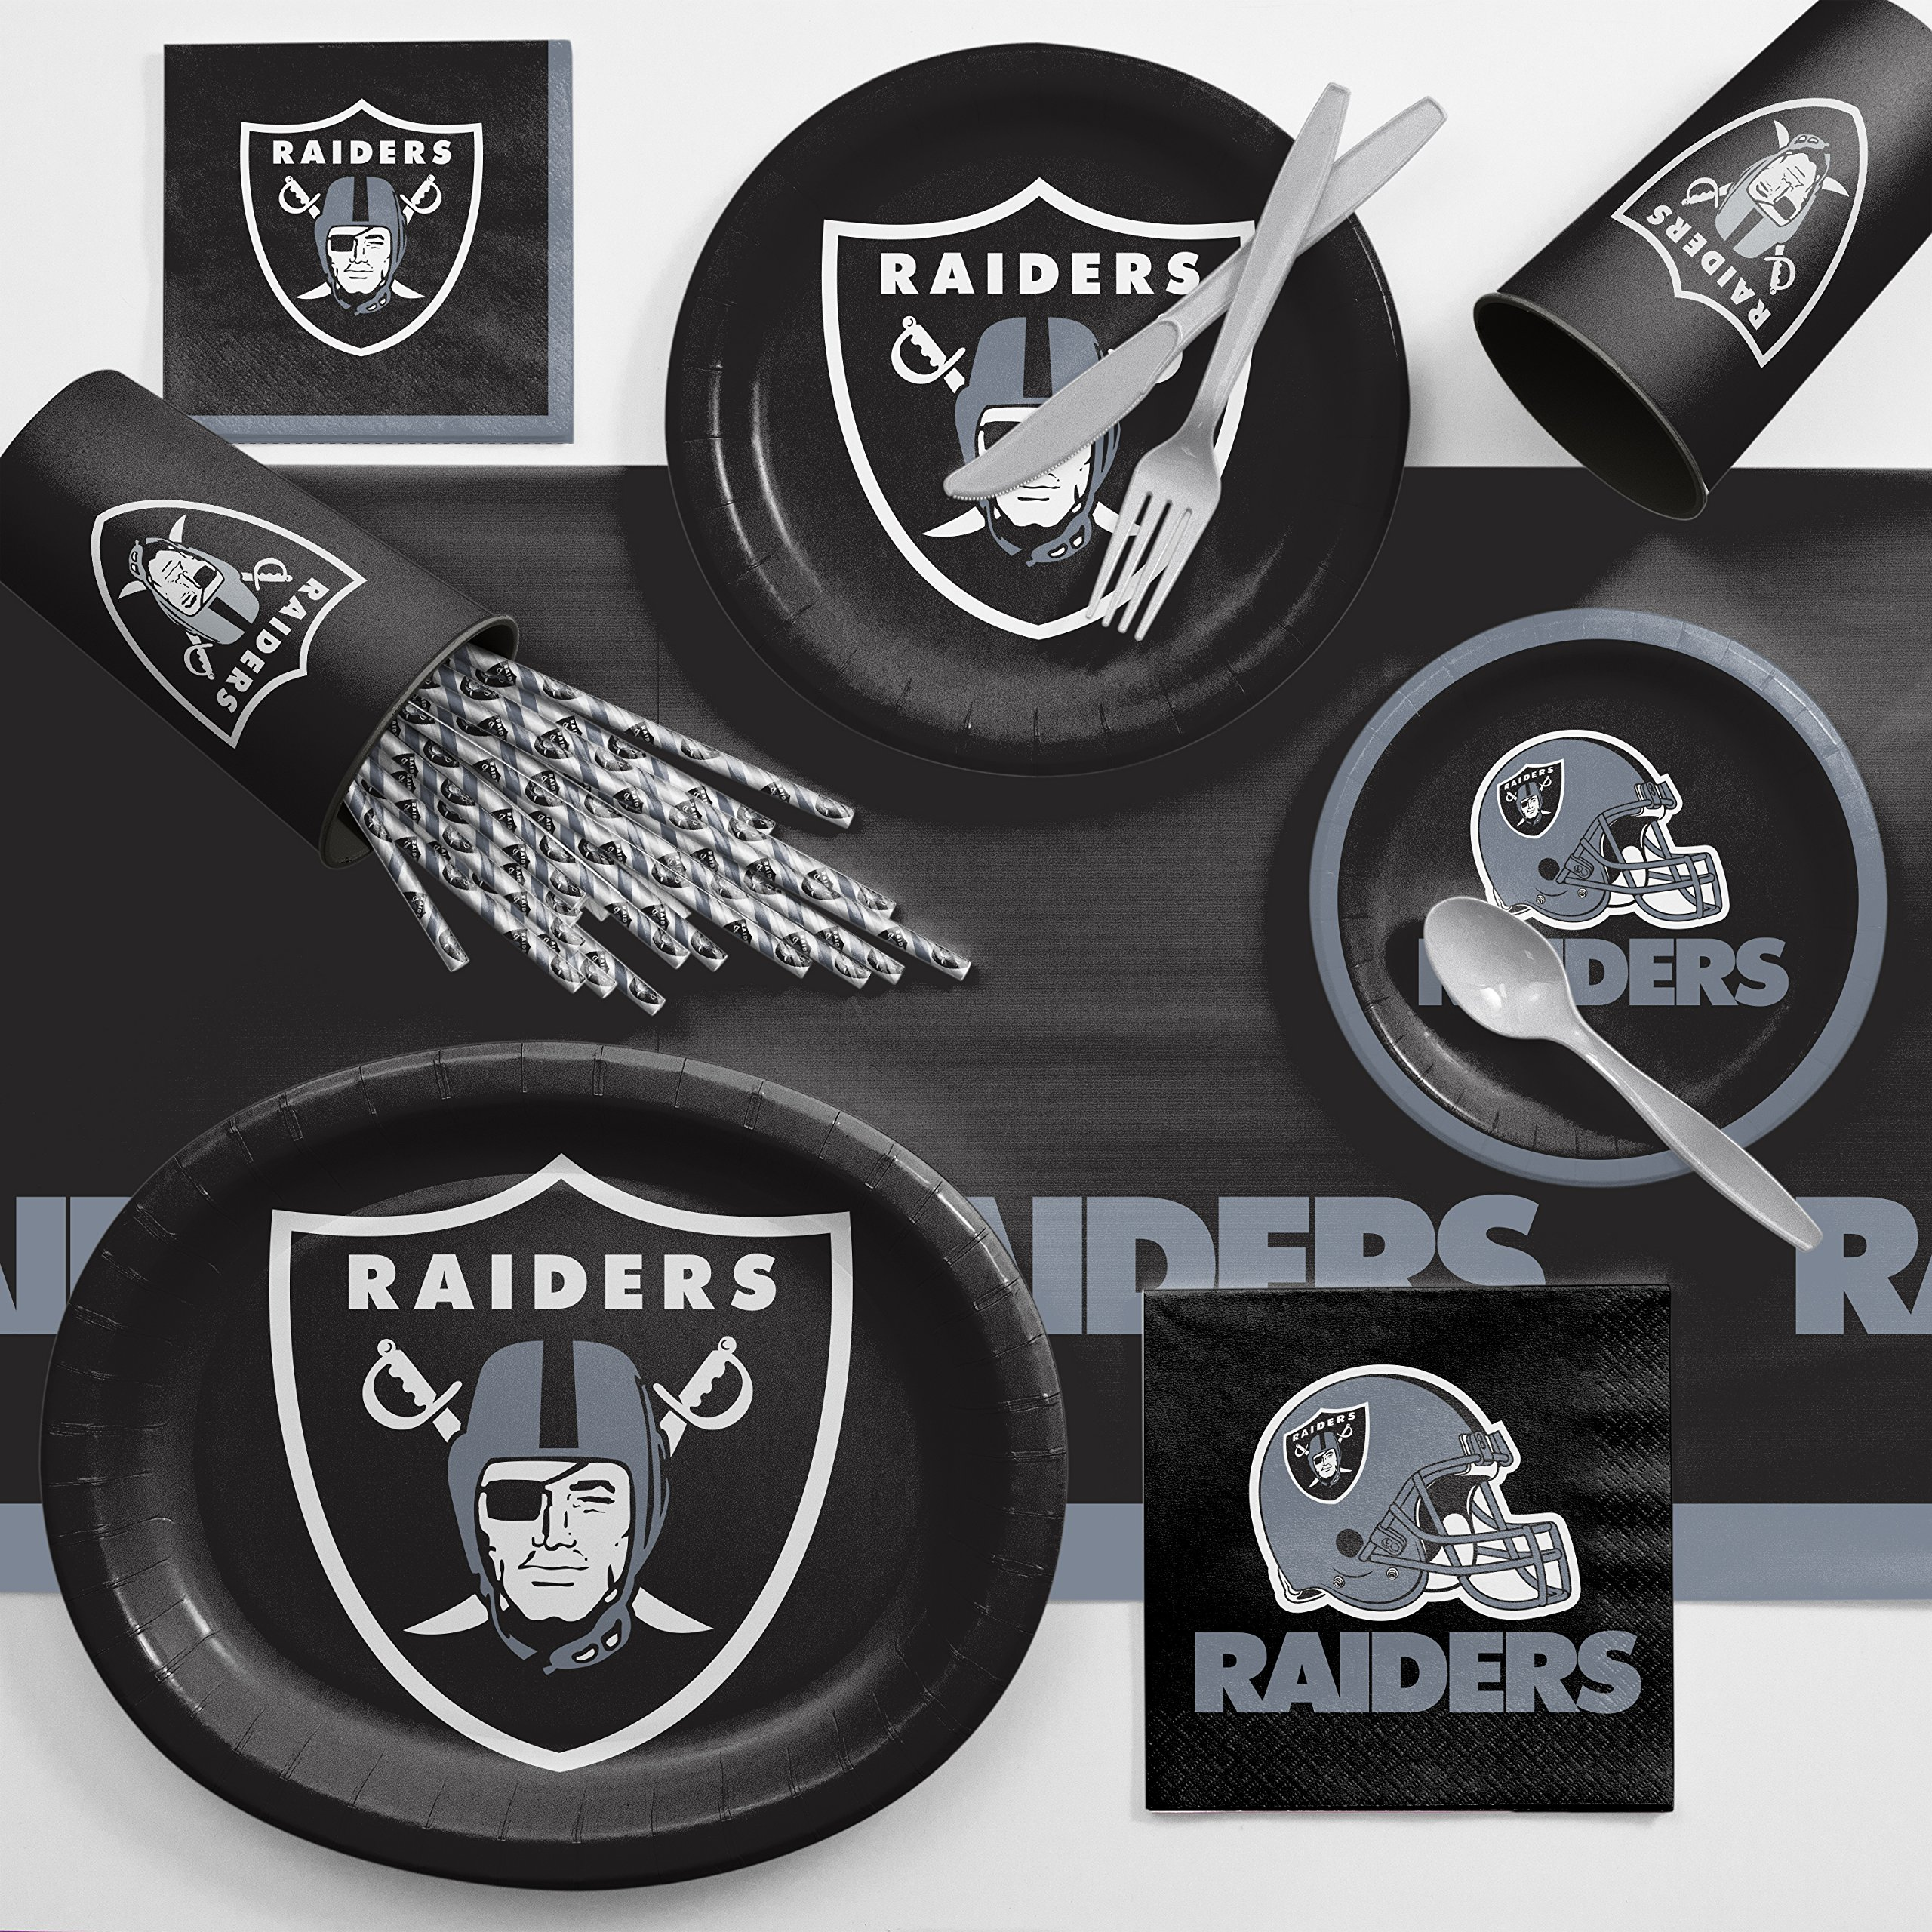 Creative Converting Oakland Raiders Ultimate Fan Party Supplies Kit, Serves 8